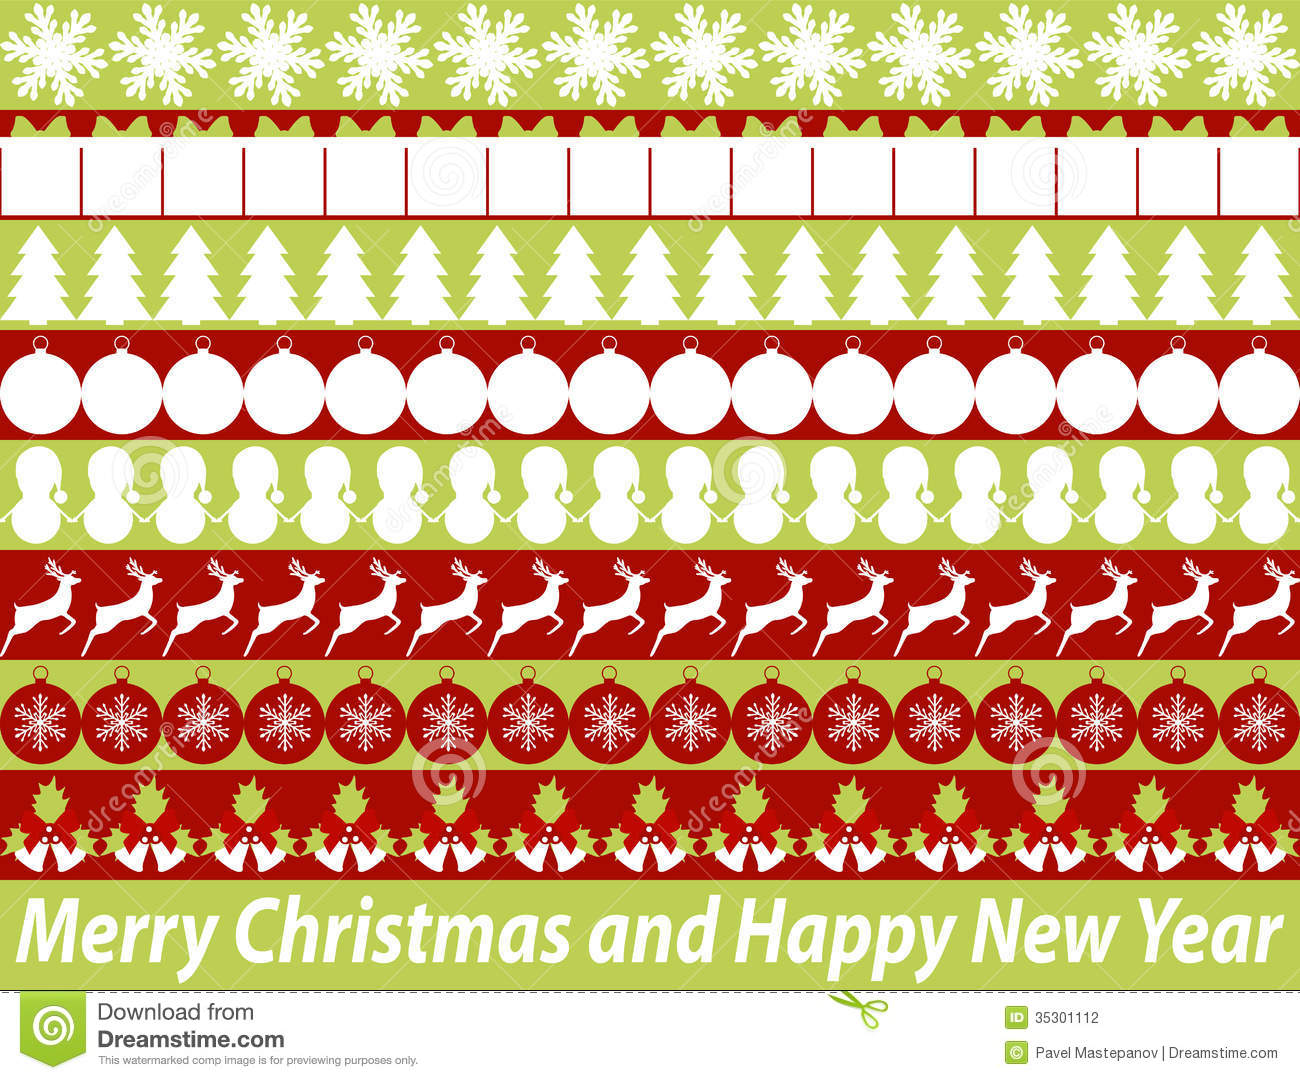 elements for christmas design stock photography - image: 35301112